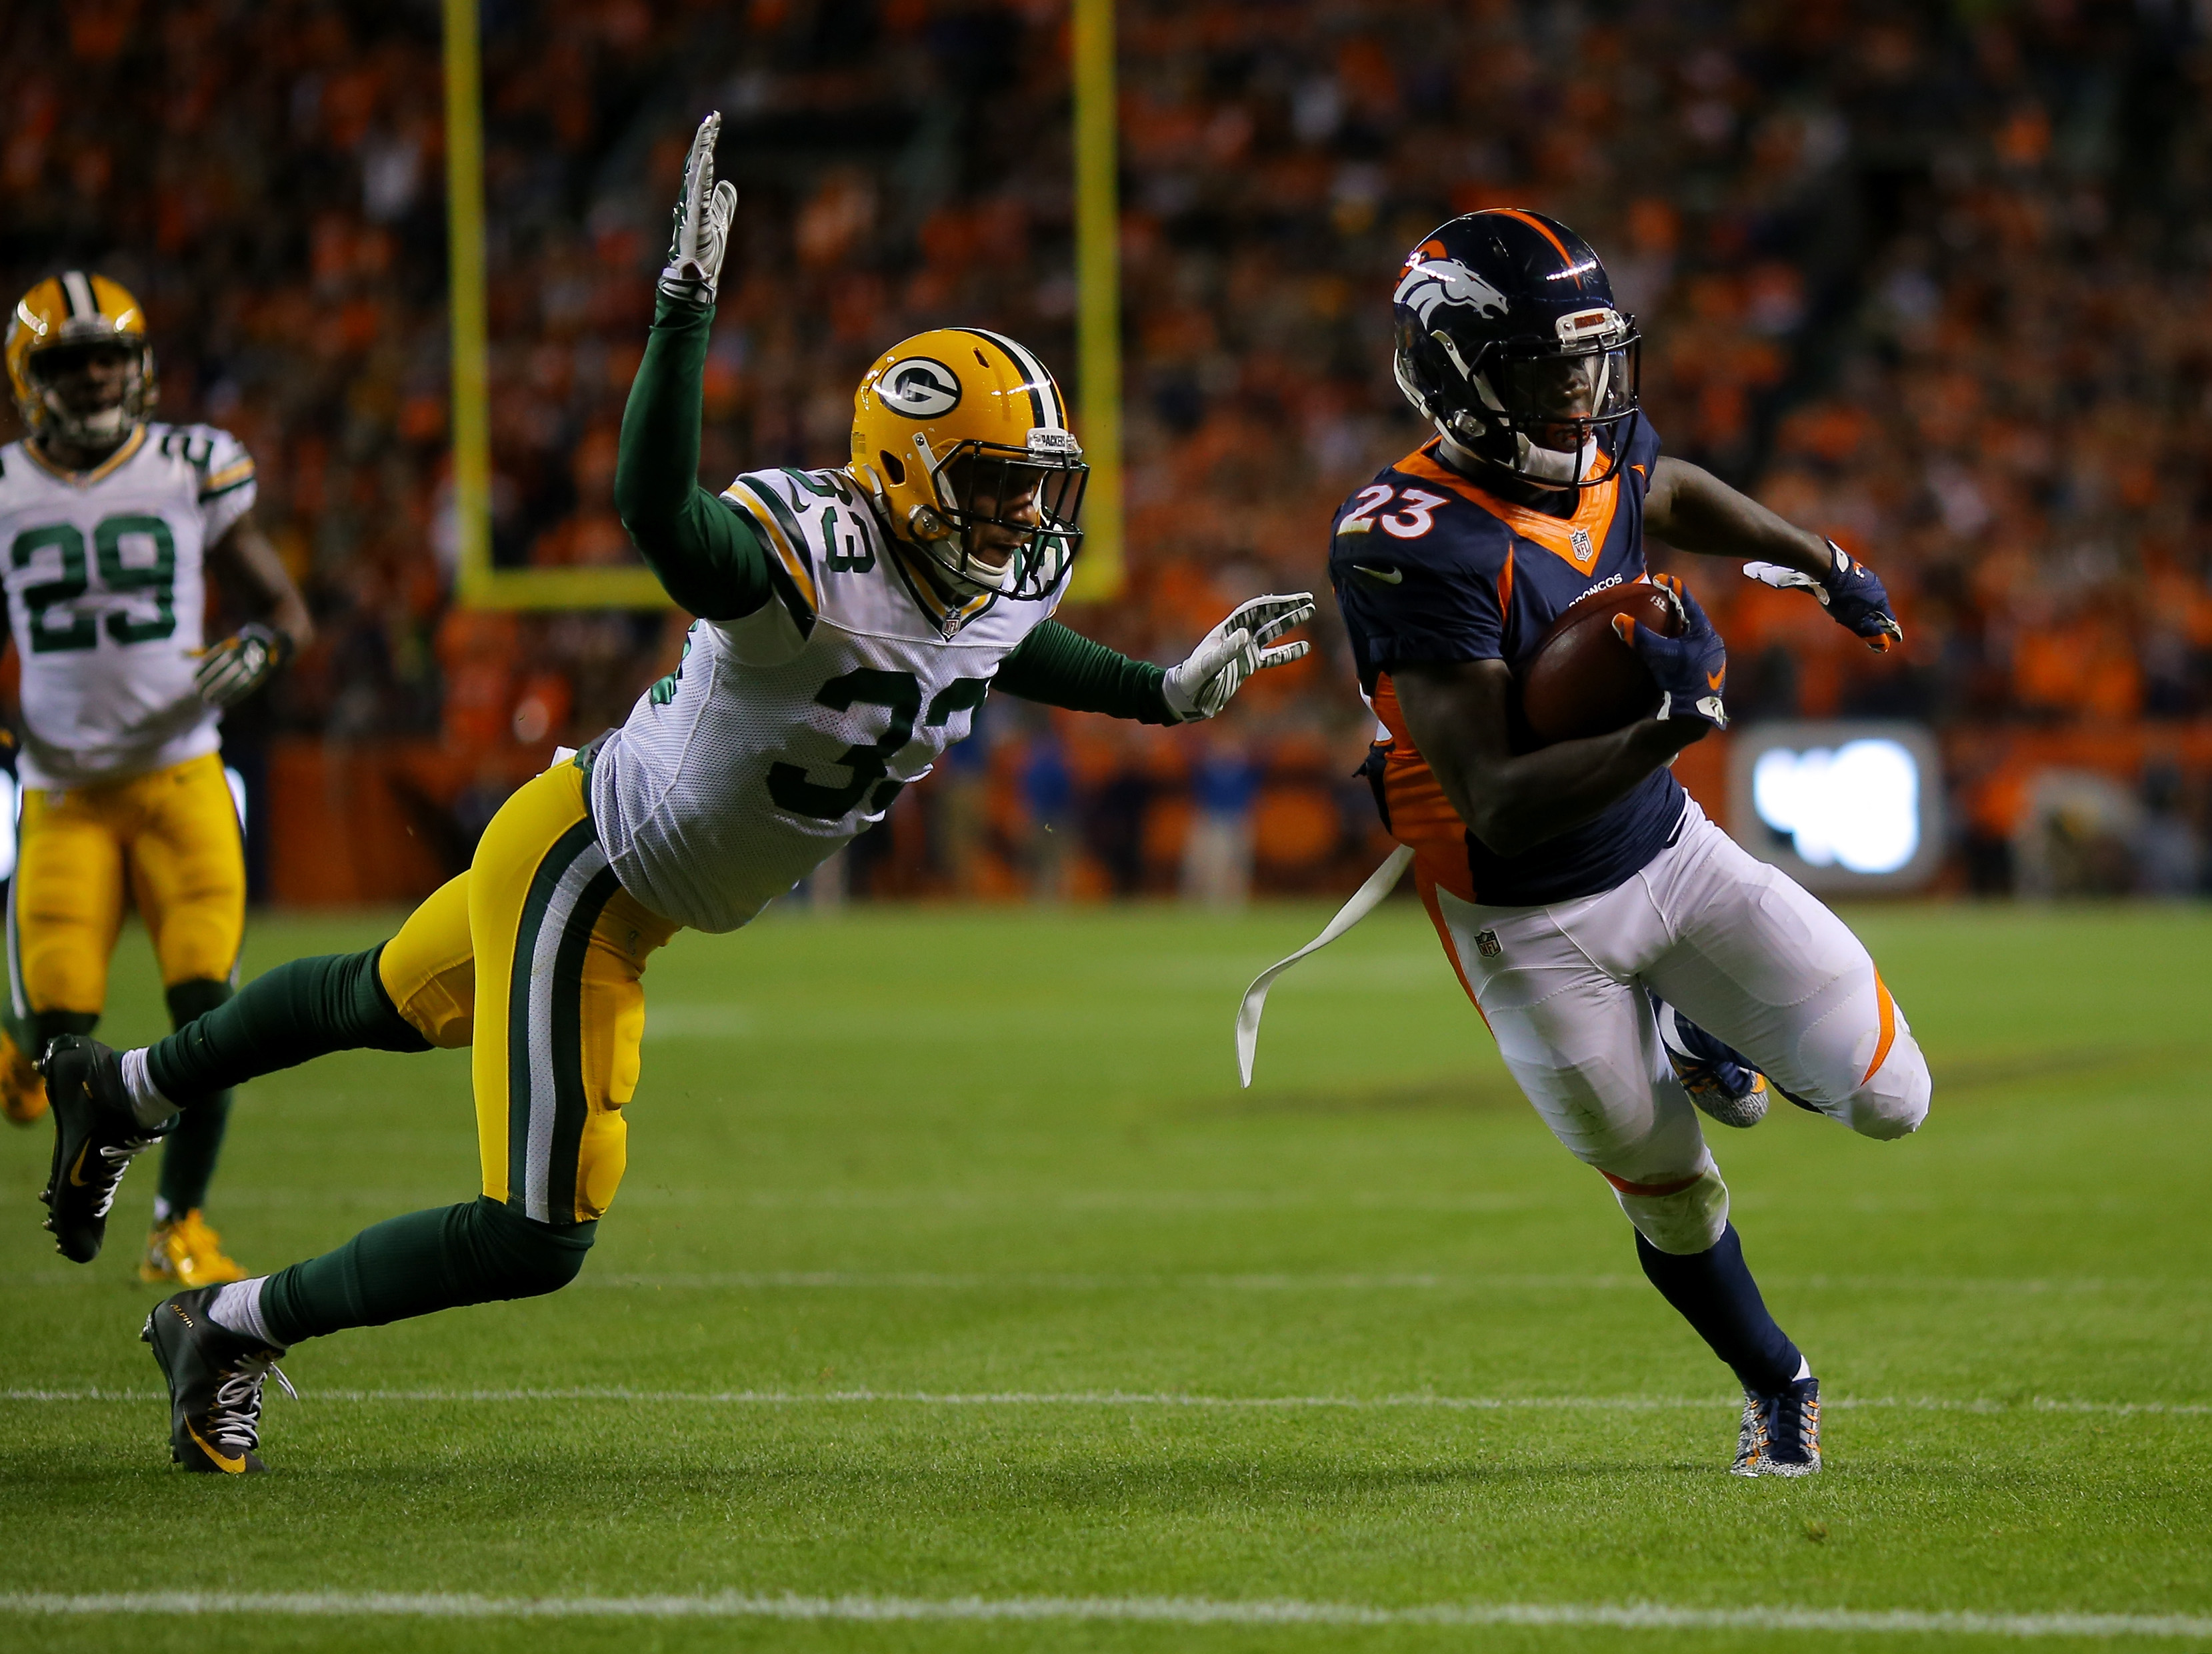 Ronnie Hillman of the Denver Broncos runs in a touchdown against Micah Hyde #33 of the Green Bay Packers in the second quarter at Sports Authority Field at Mile High on November 1, 2015.  (Photo by Justin Edmonds/Getty Images)